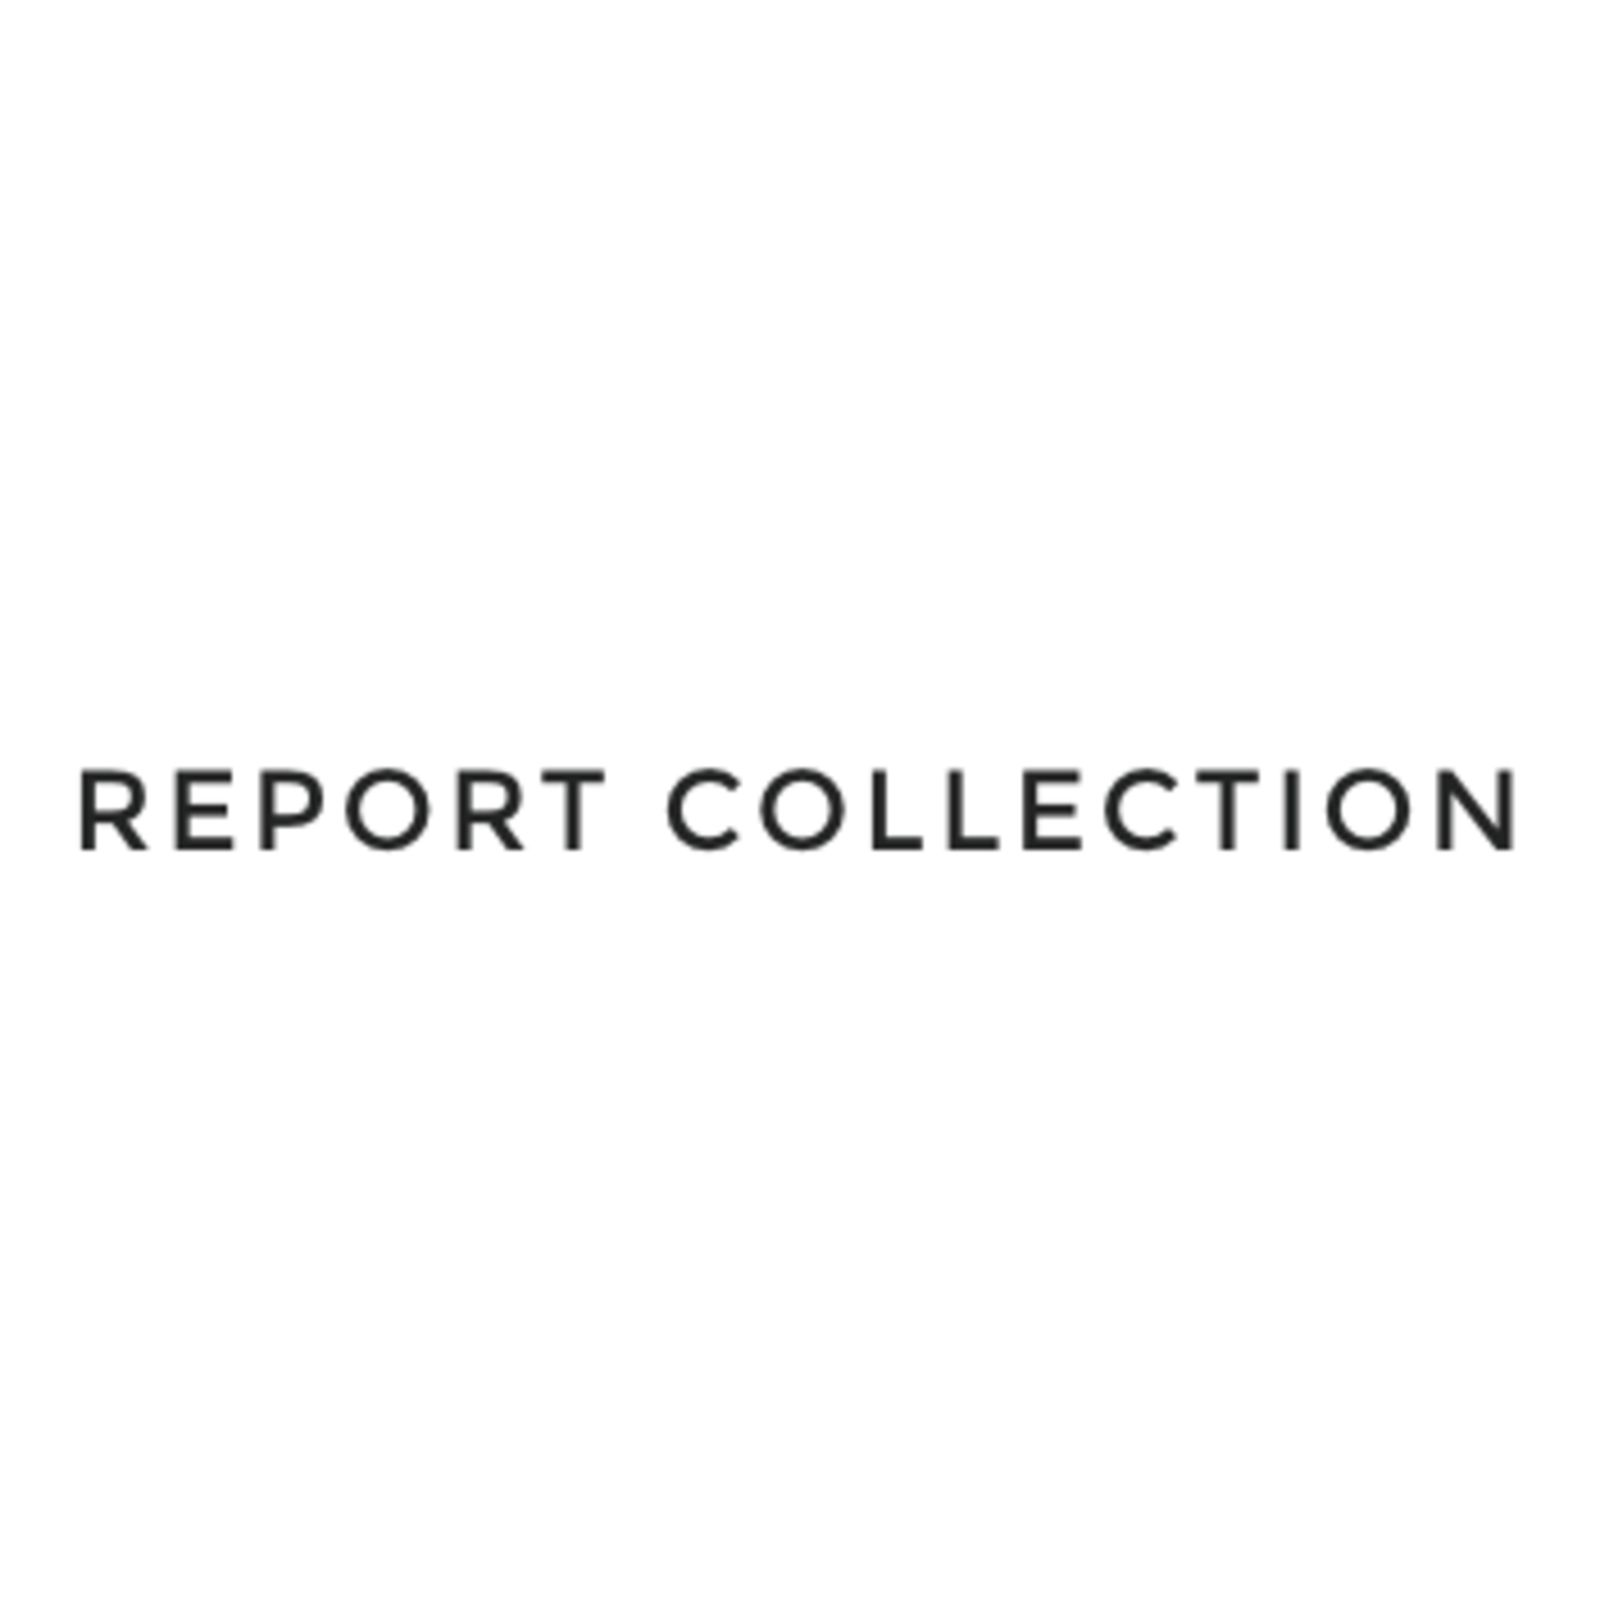 REPORT COLLECTION